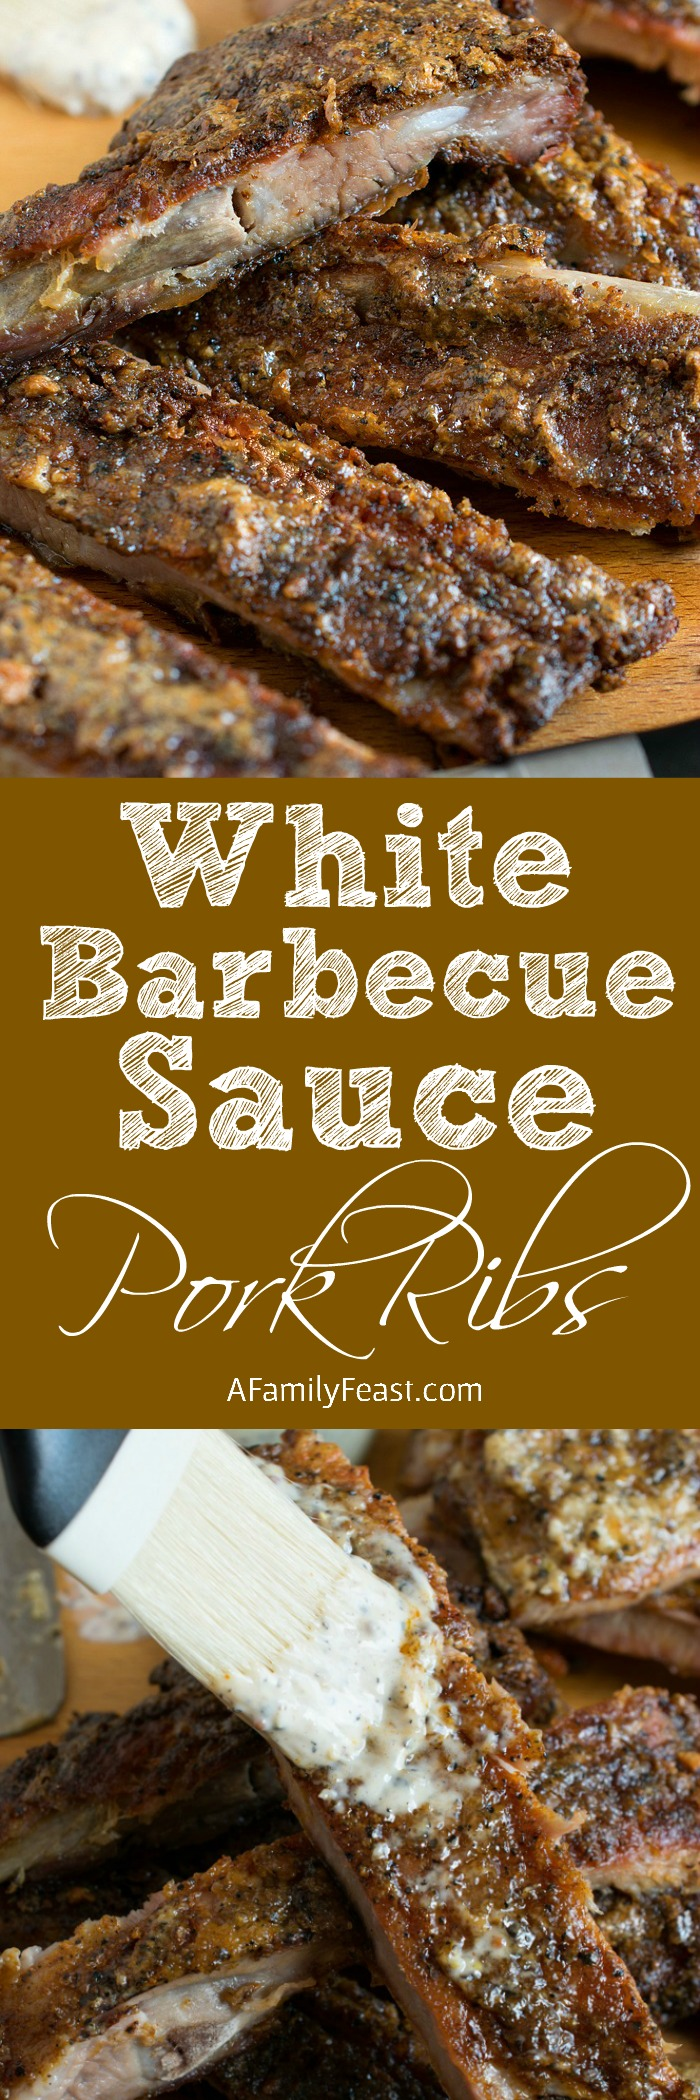 White Barbecue Sauce Pork Ribs - A delicious change from the same old barbecued ribs! This zesty, peppery white sauce is fantastic on ribs!